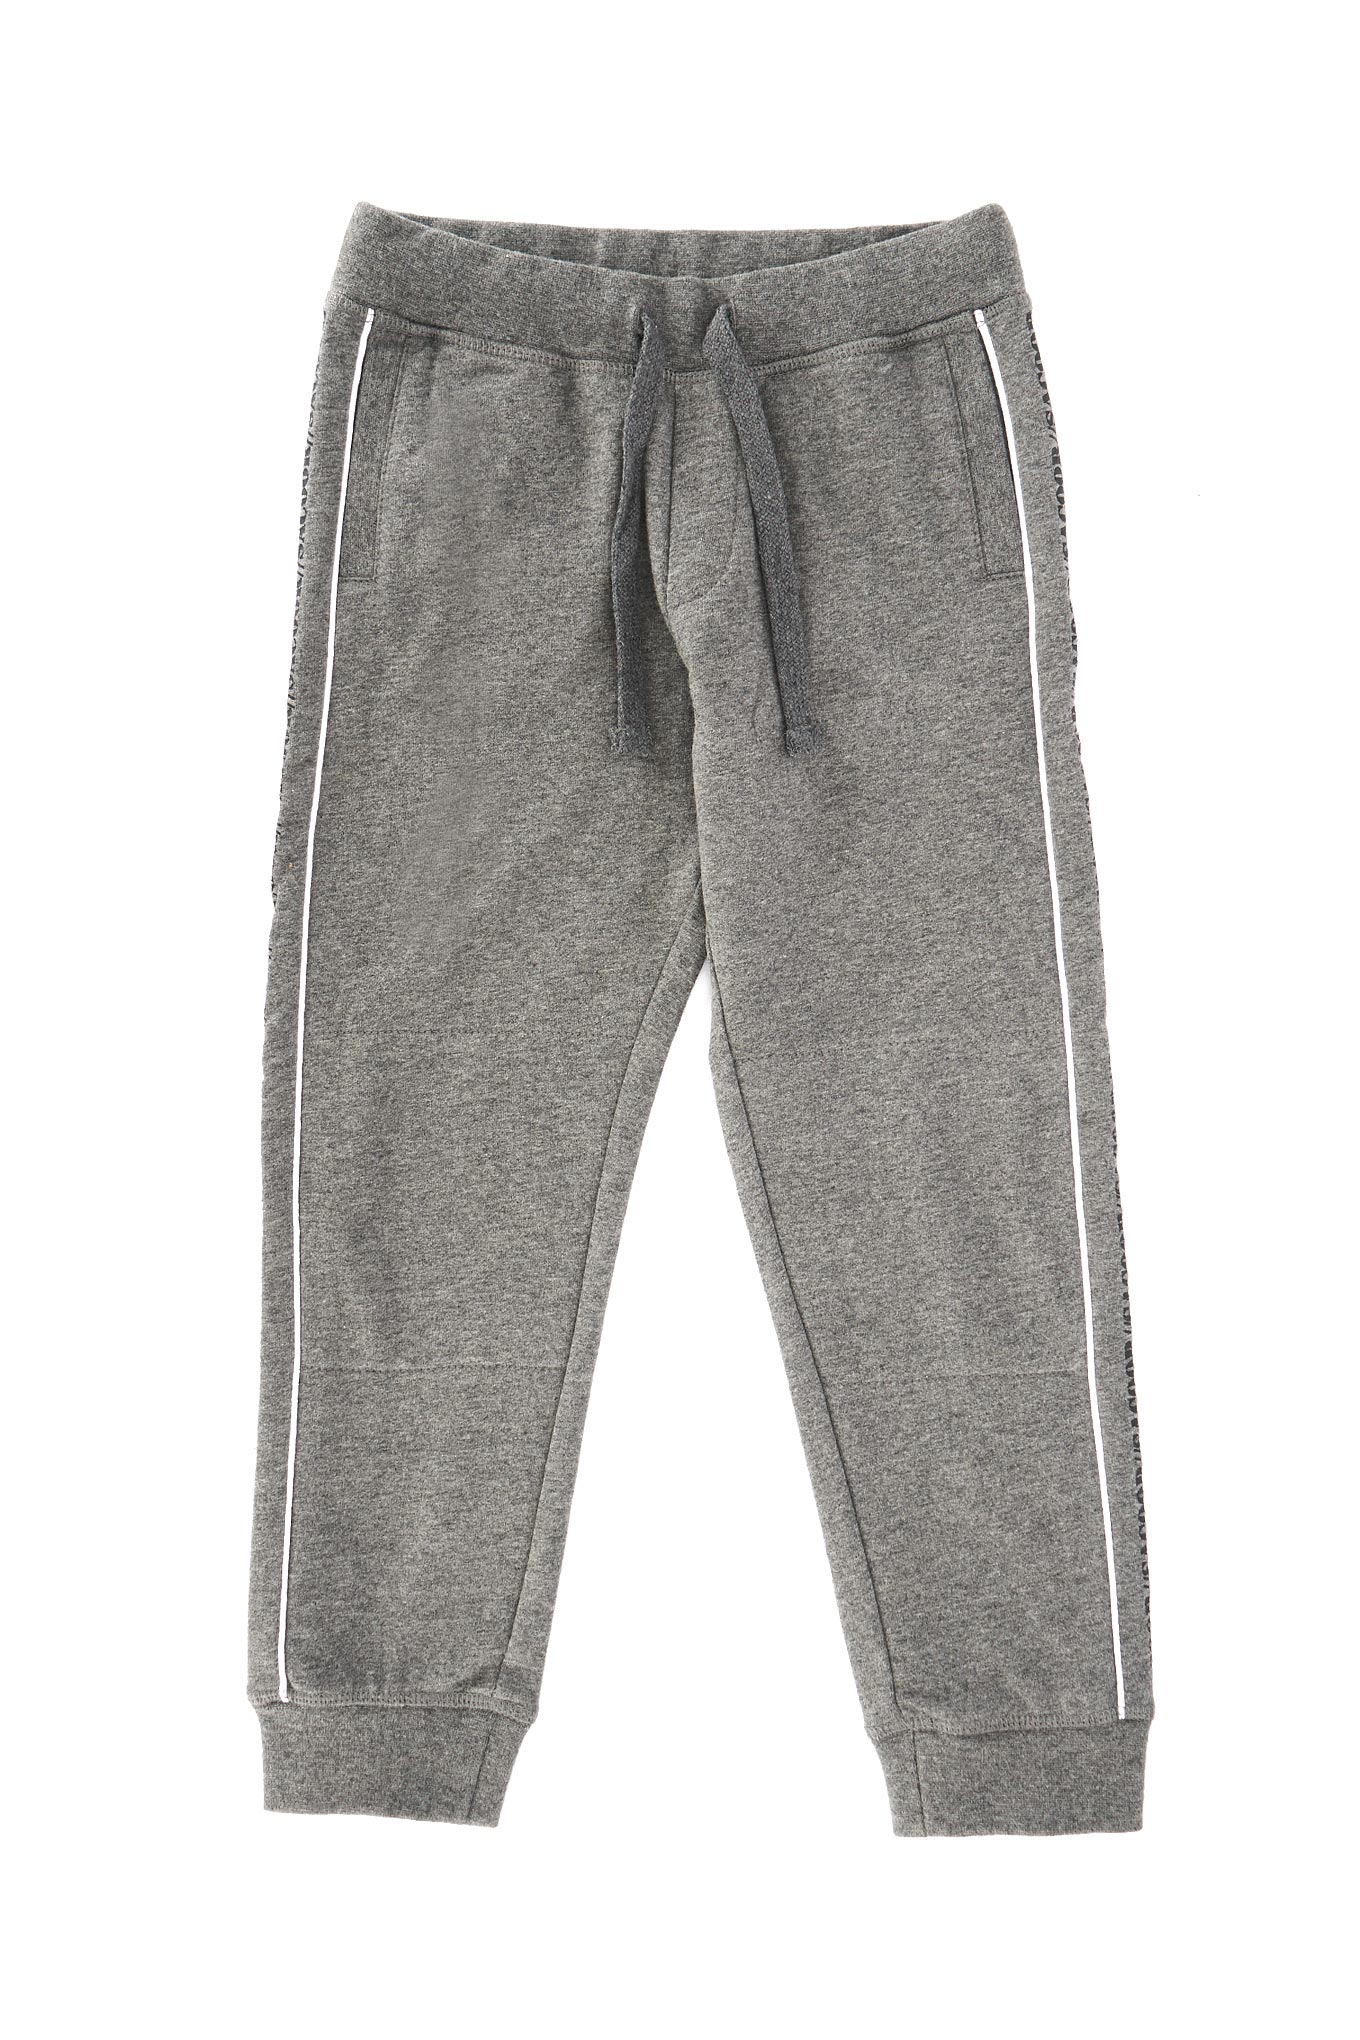 Sportswear Trousers Dark Grey Sport Boy